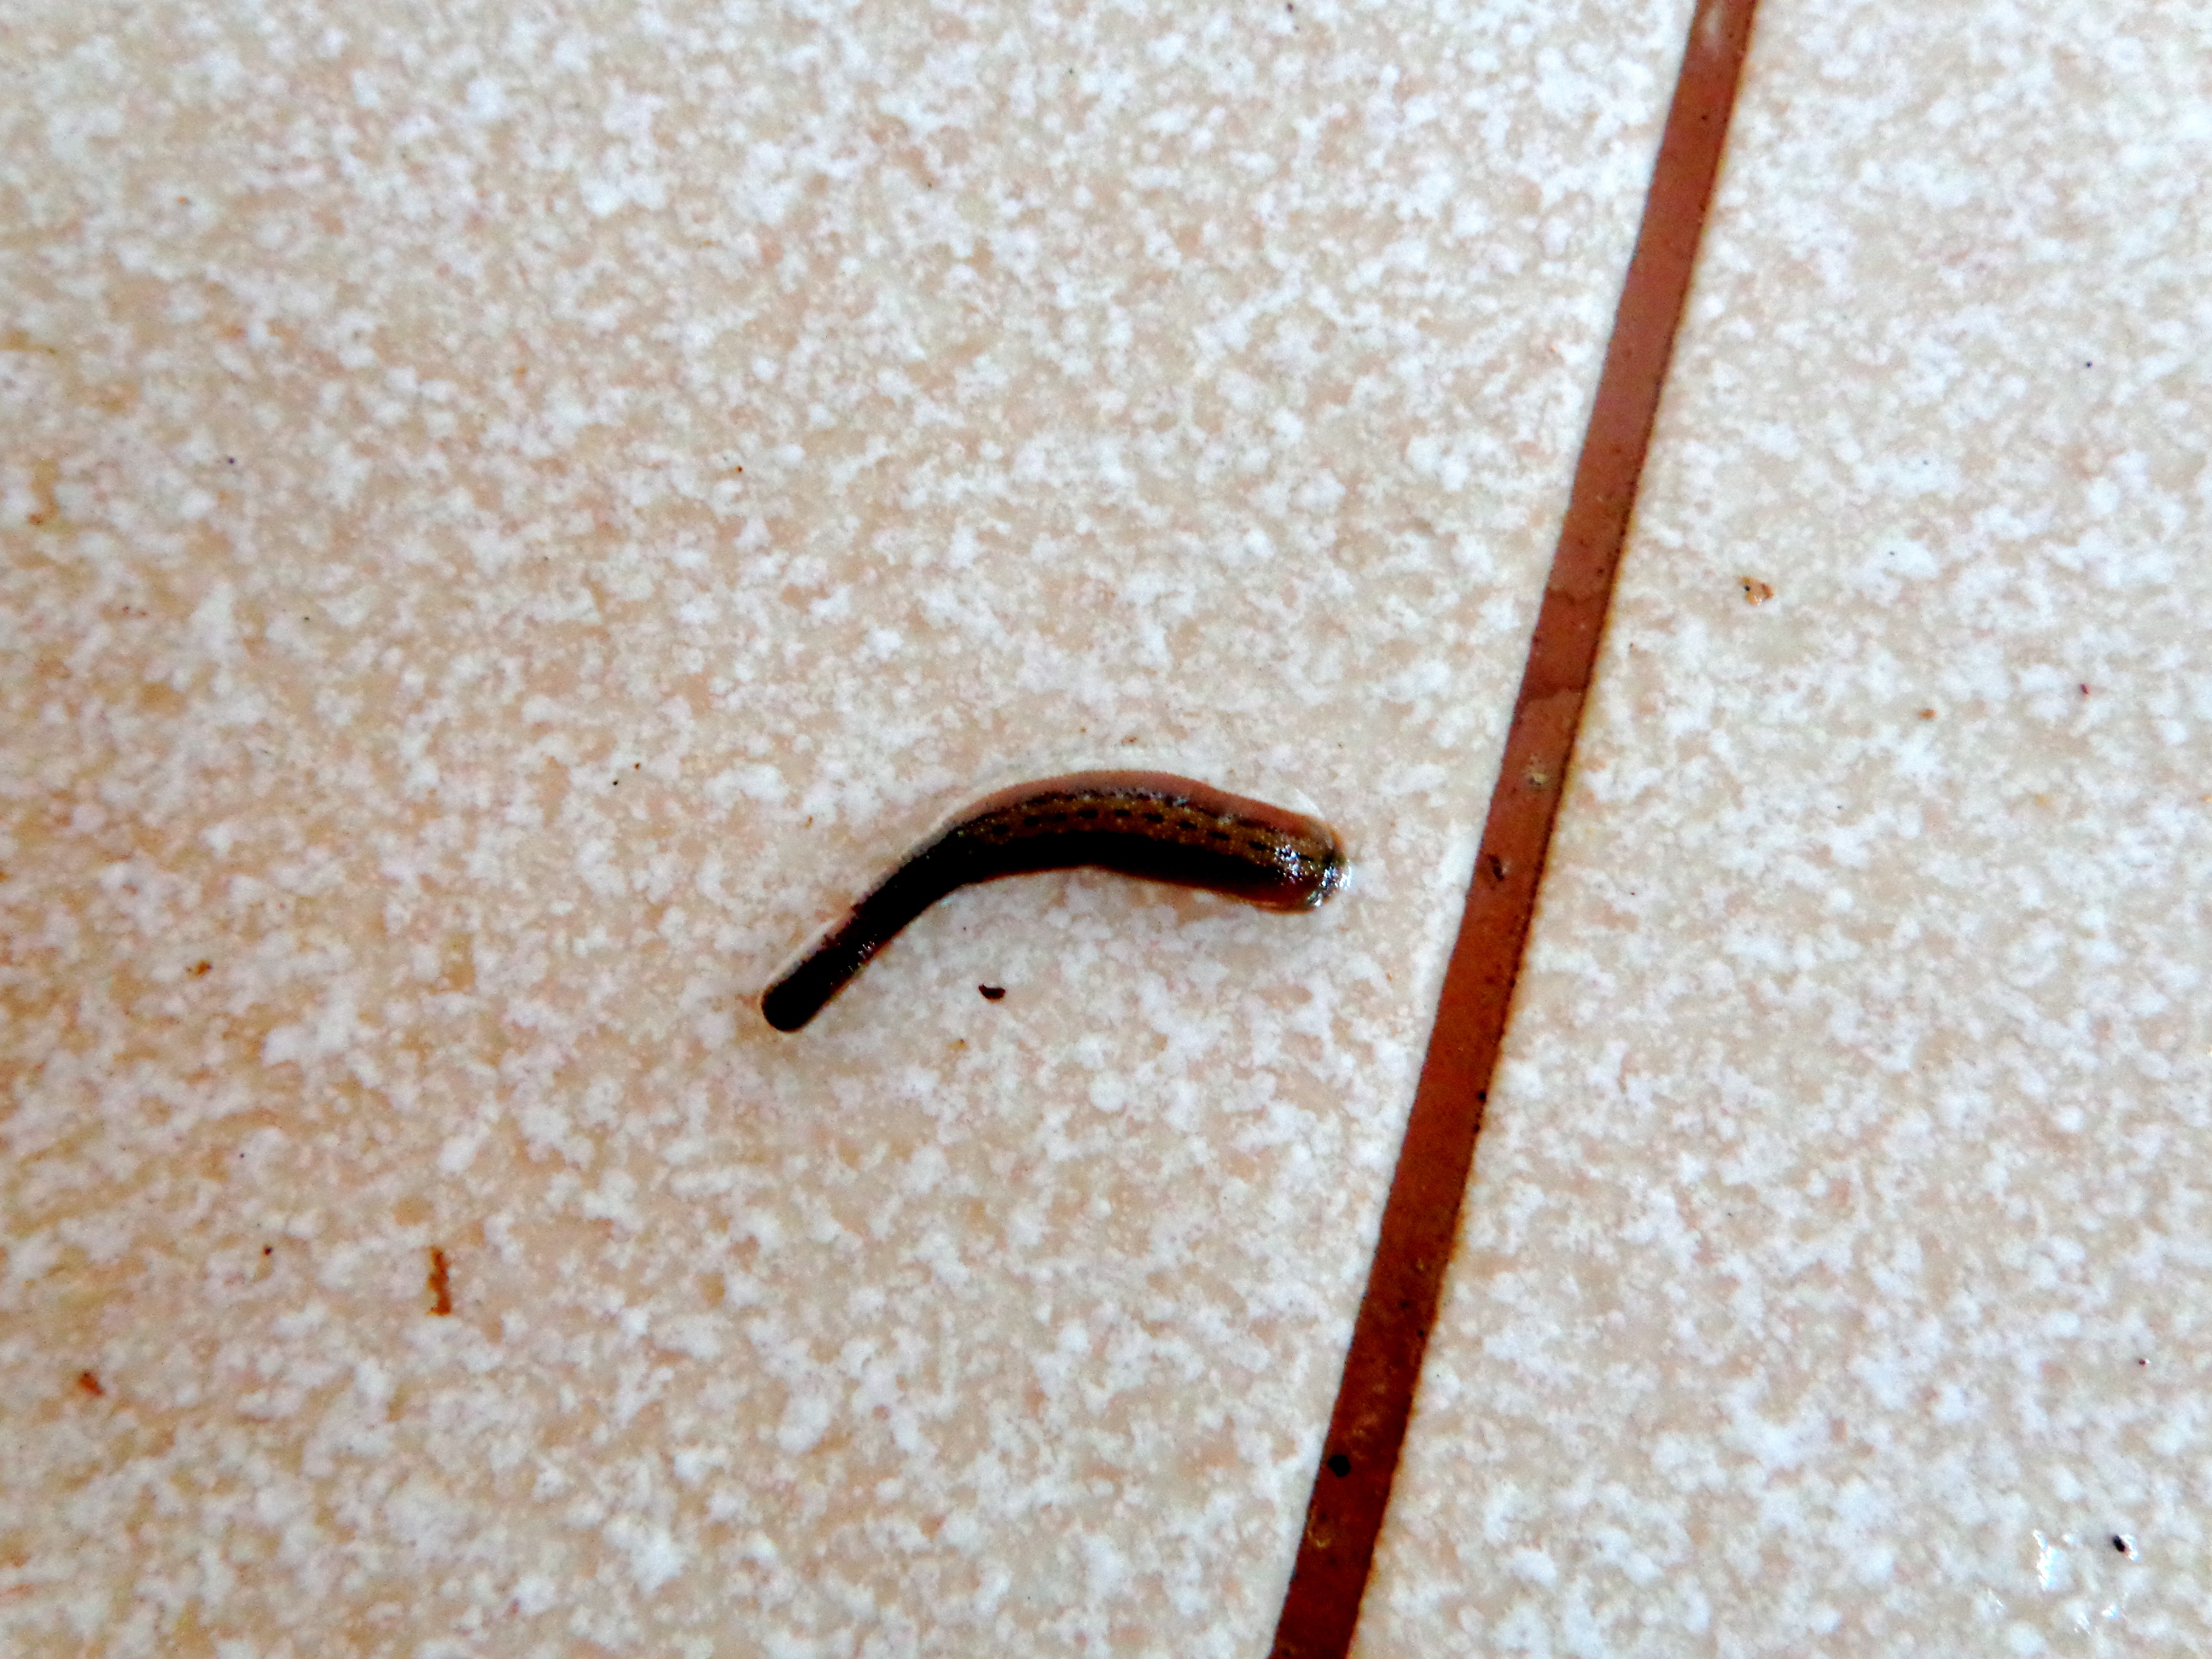 Leeches in Khao Sok National Park